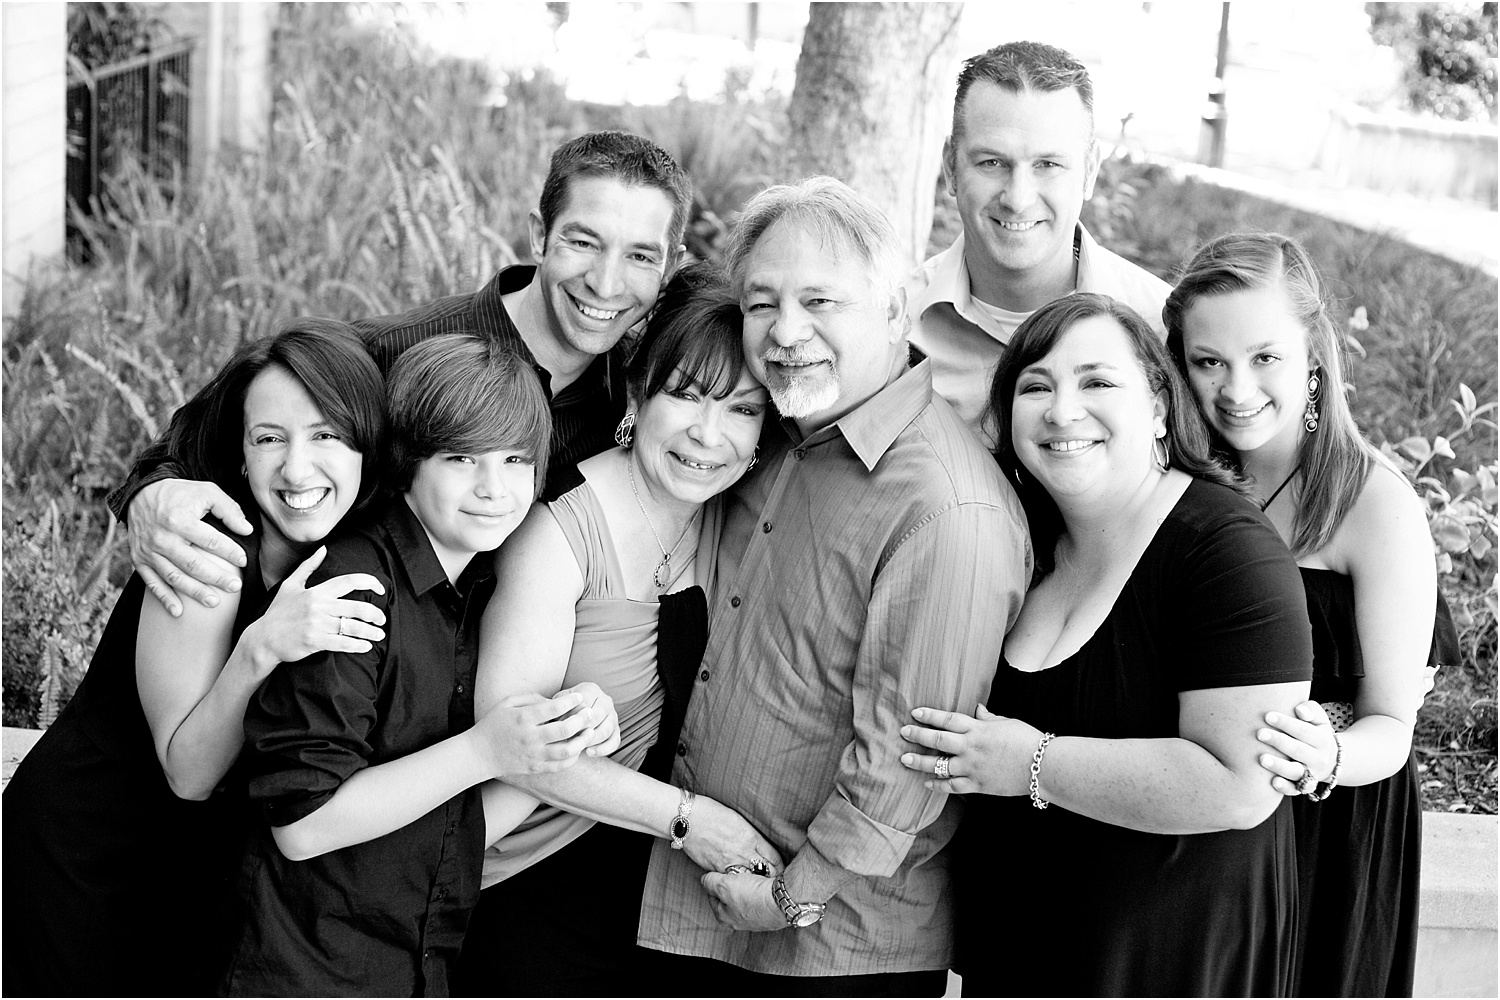 Tips for Posing Large Families and Groups - family hugging b/w